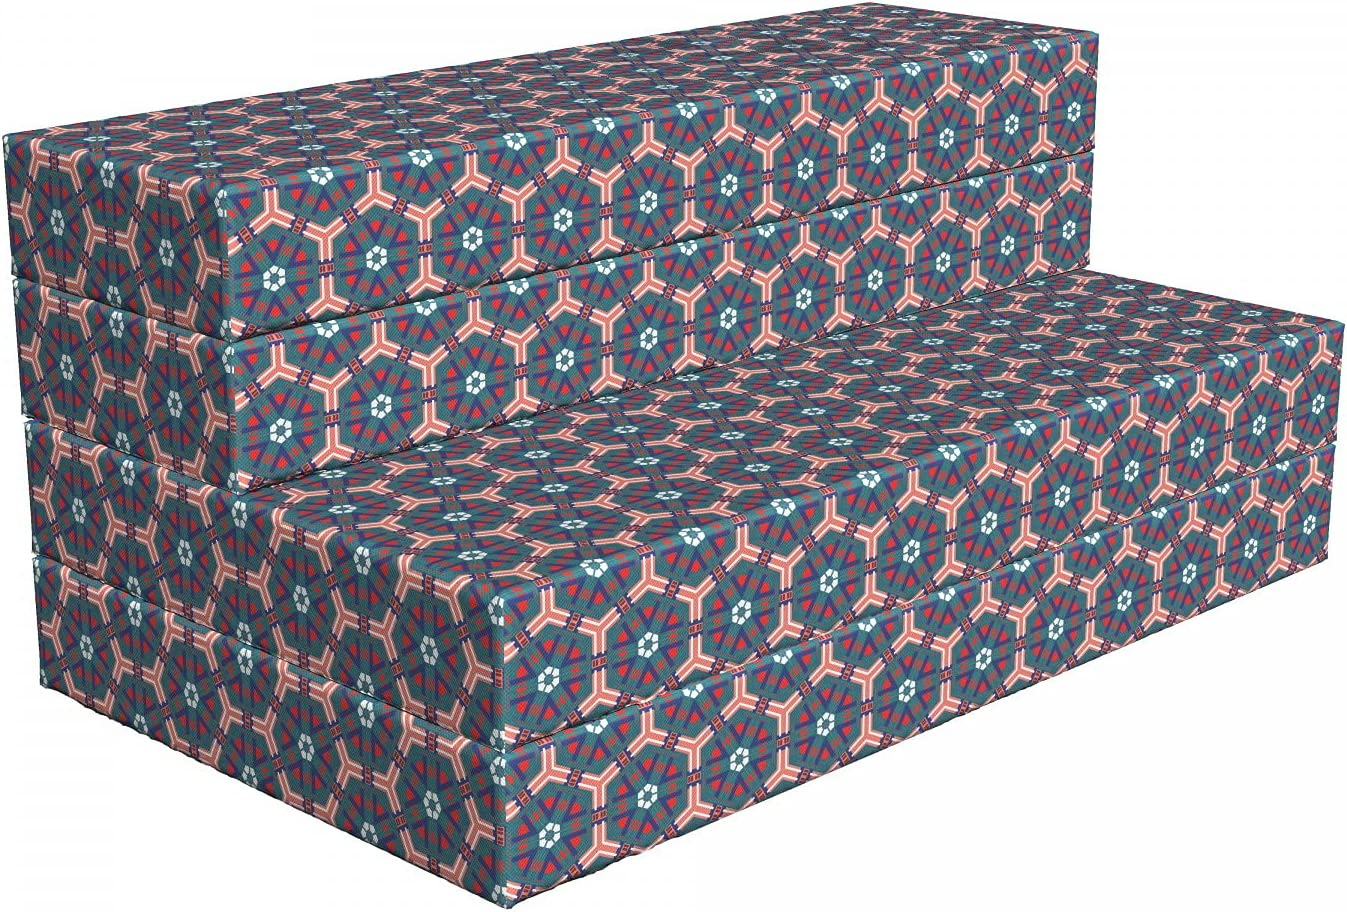 Ambesonne Max 40% Selling and selling OFF Traditional Foldable Mattress Hexagonal Tiles 78.7